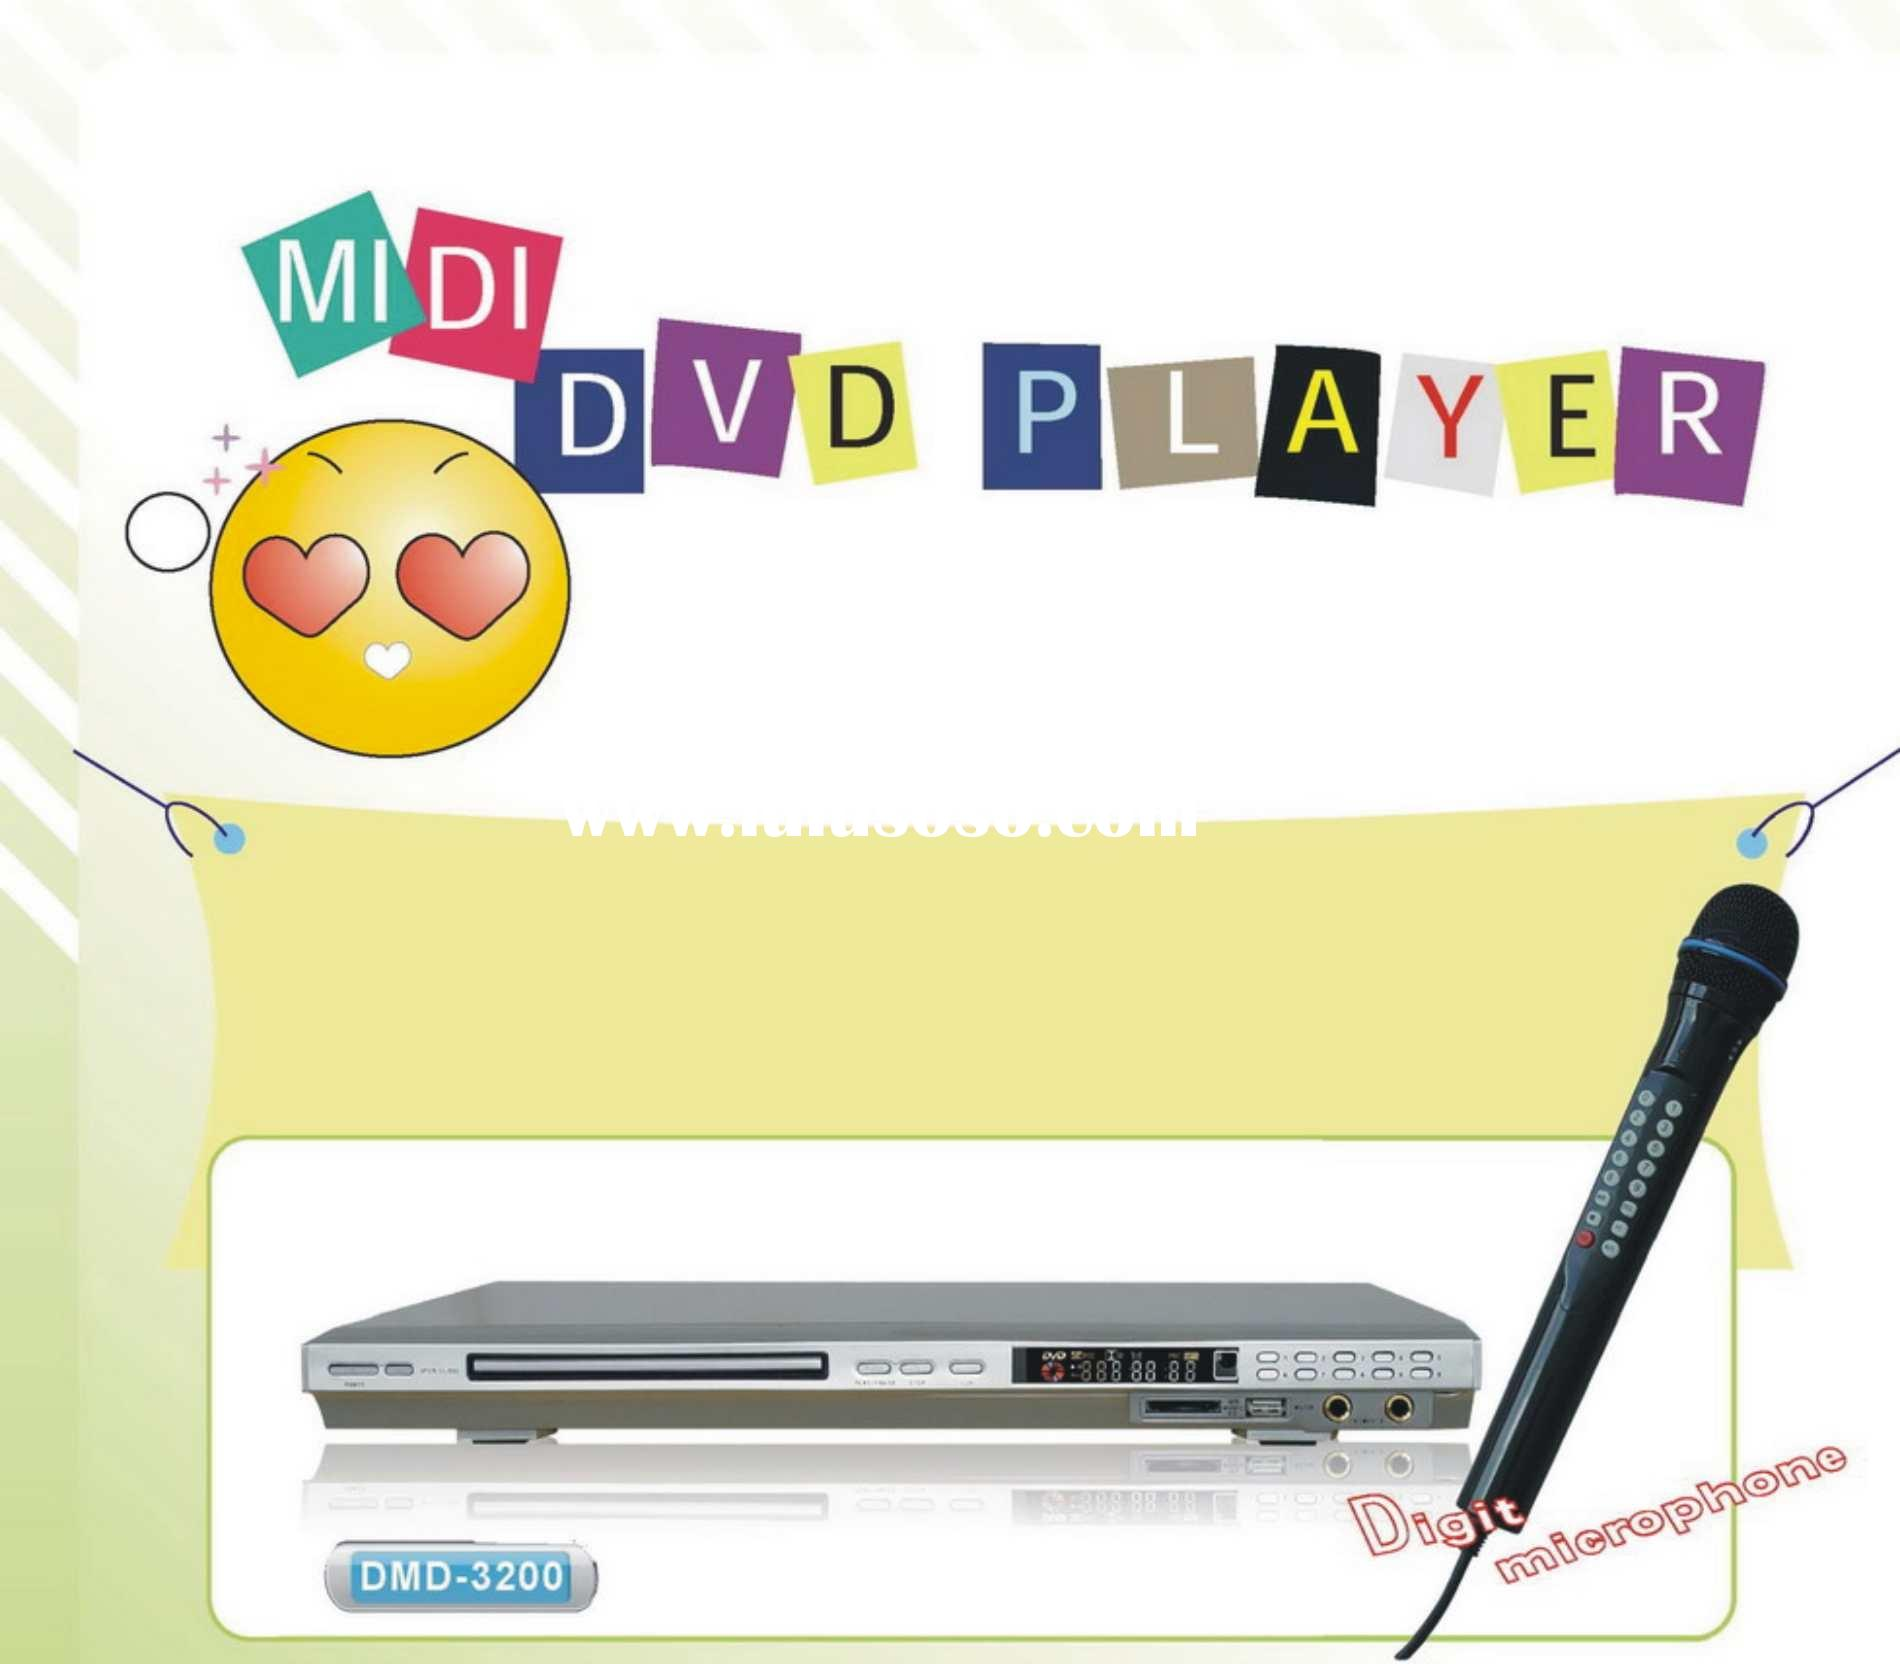 Midi DVD Karaoke Player with inbuilt card reader+USB+2pcs Wired Digit Mic (optional)(DMD-3200)